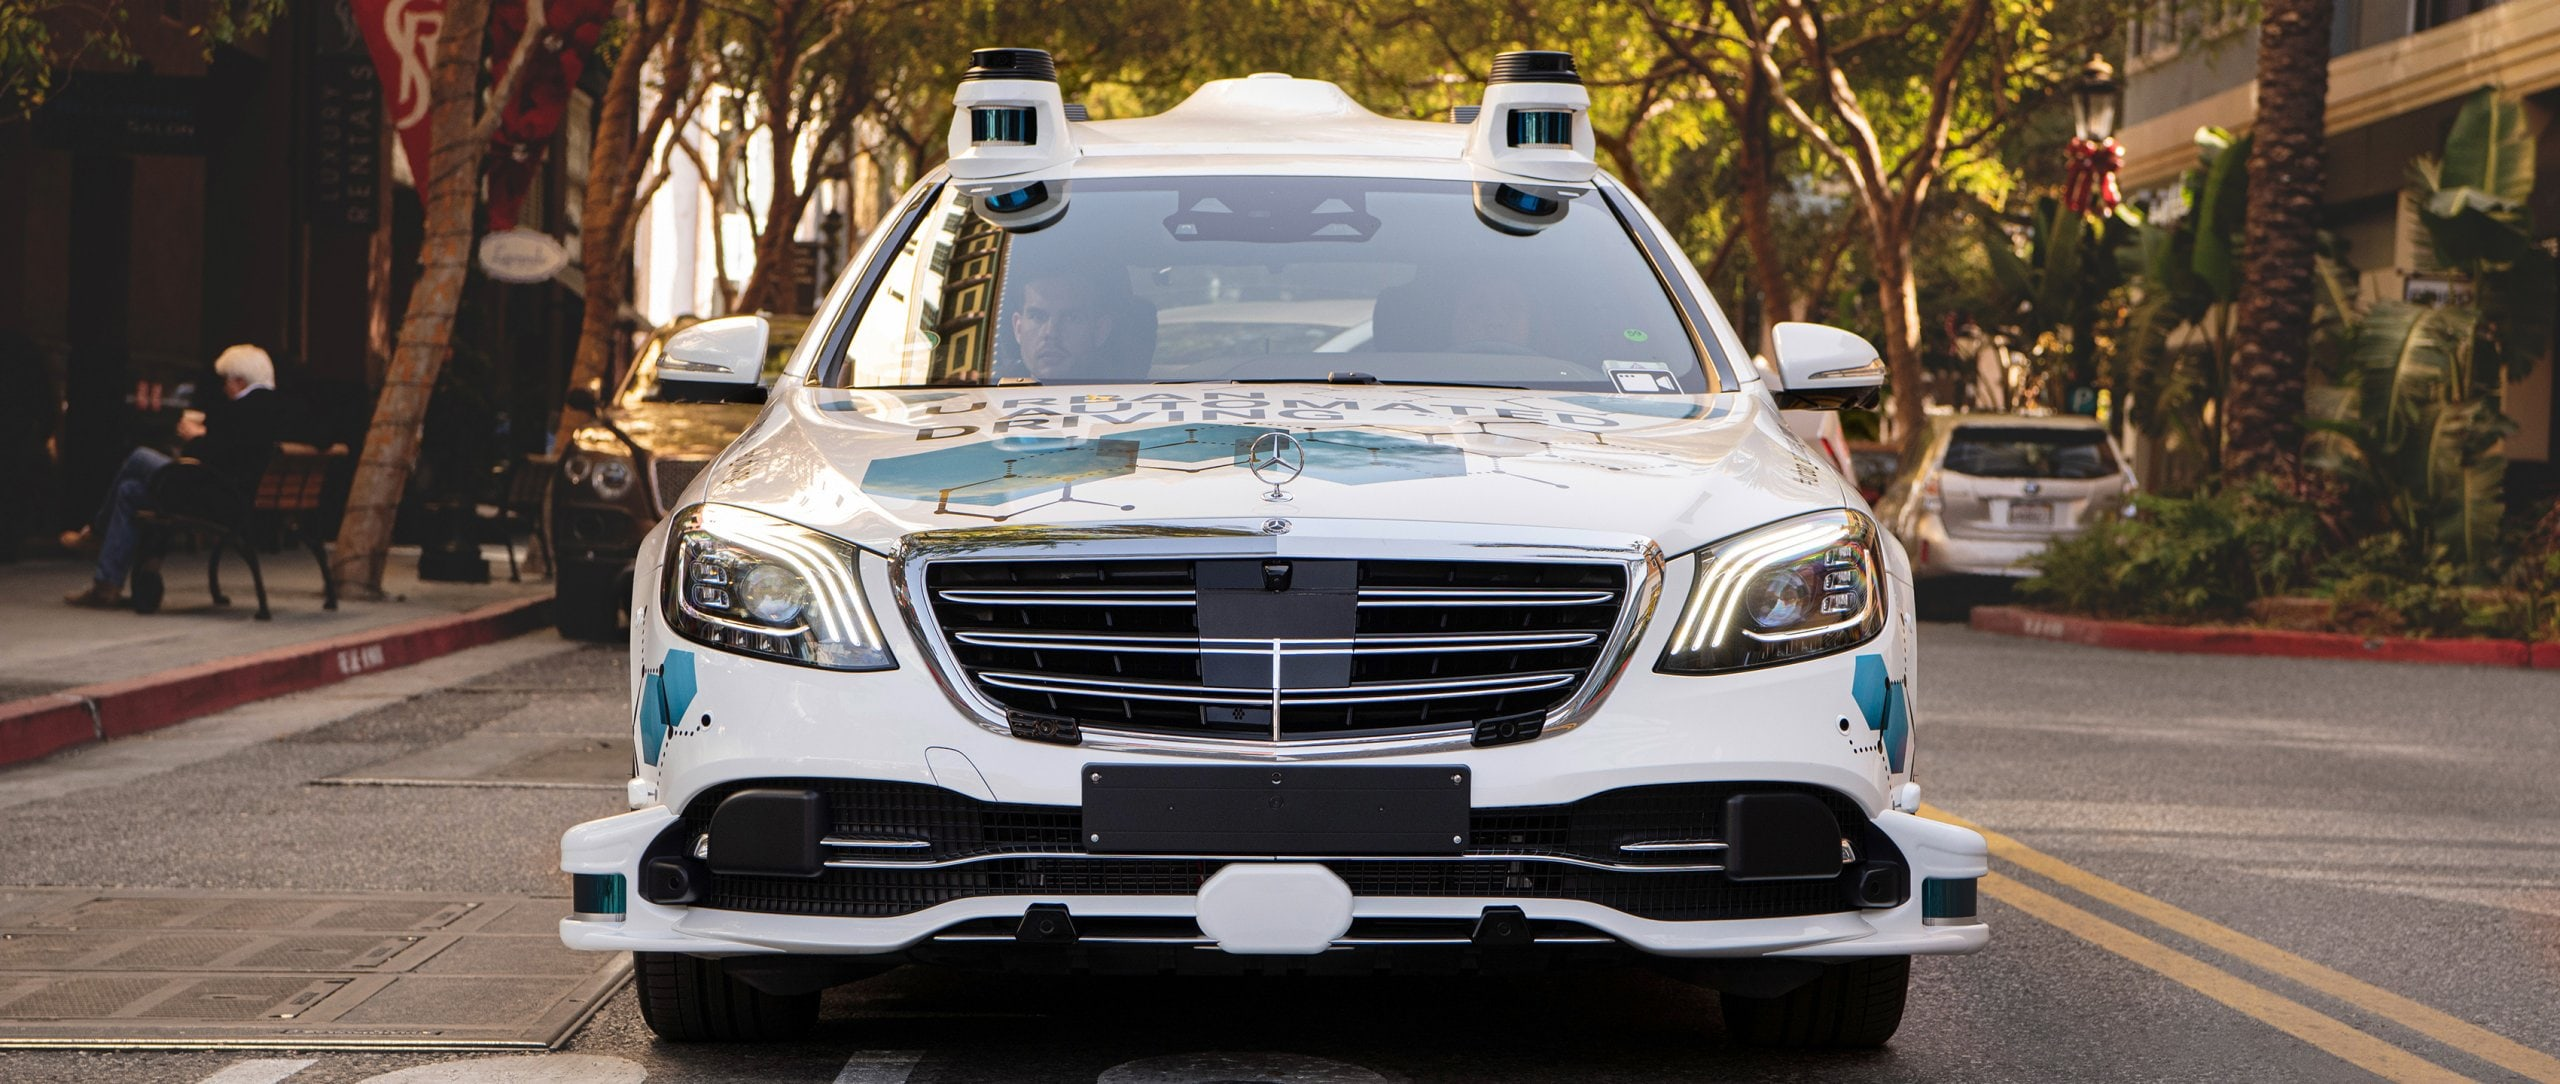 An automated vehicle from Mercedes-Benz.